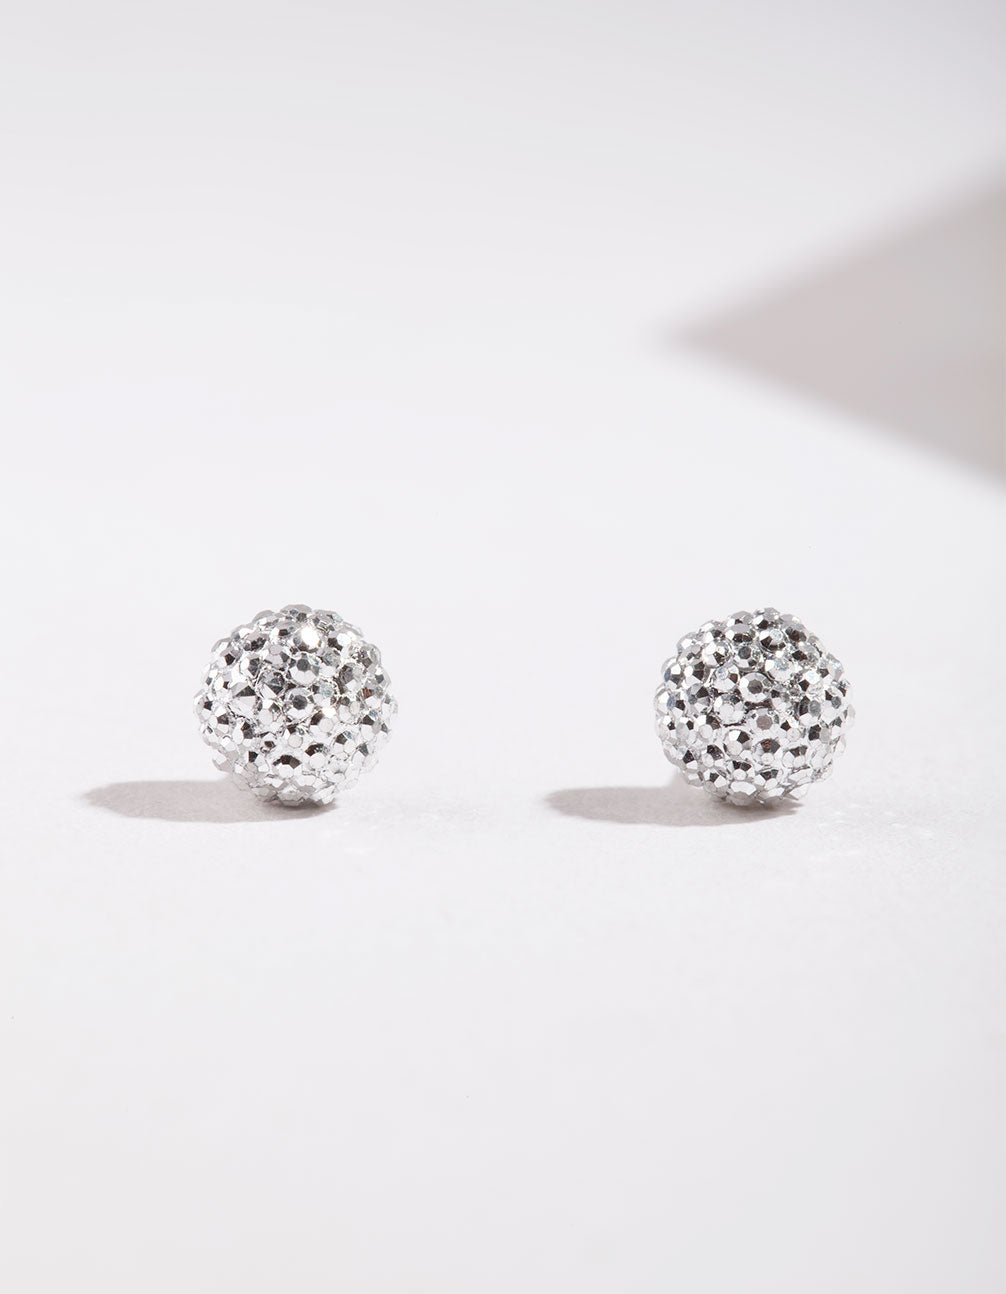 Silver Mini Fireball Stud Earrings